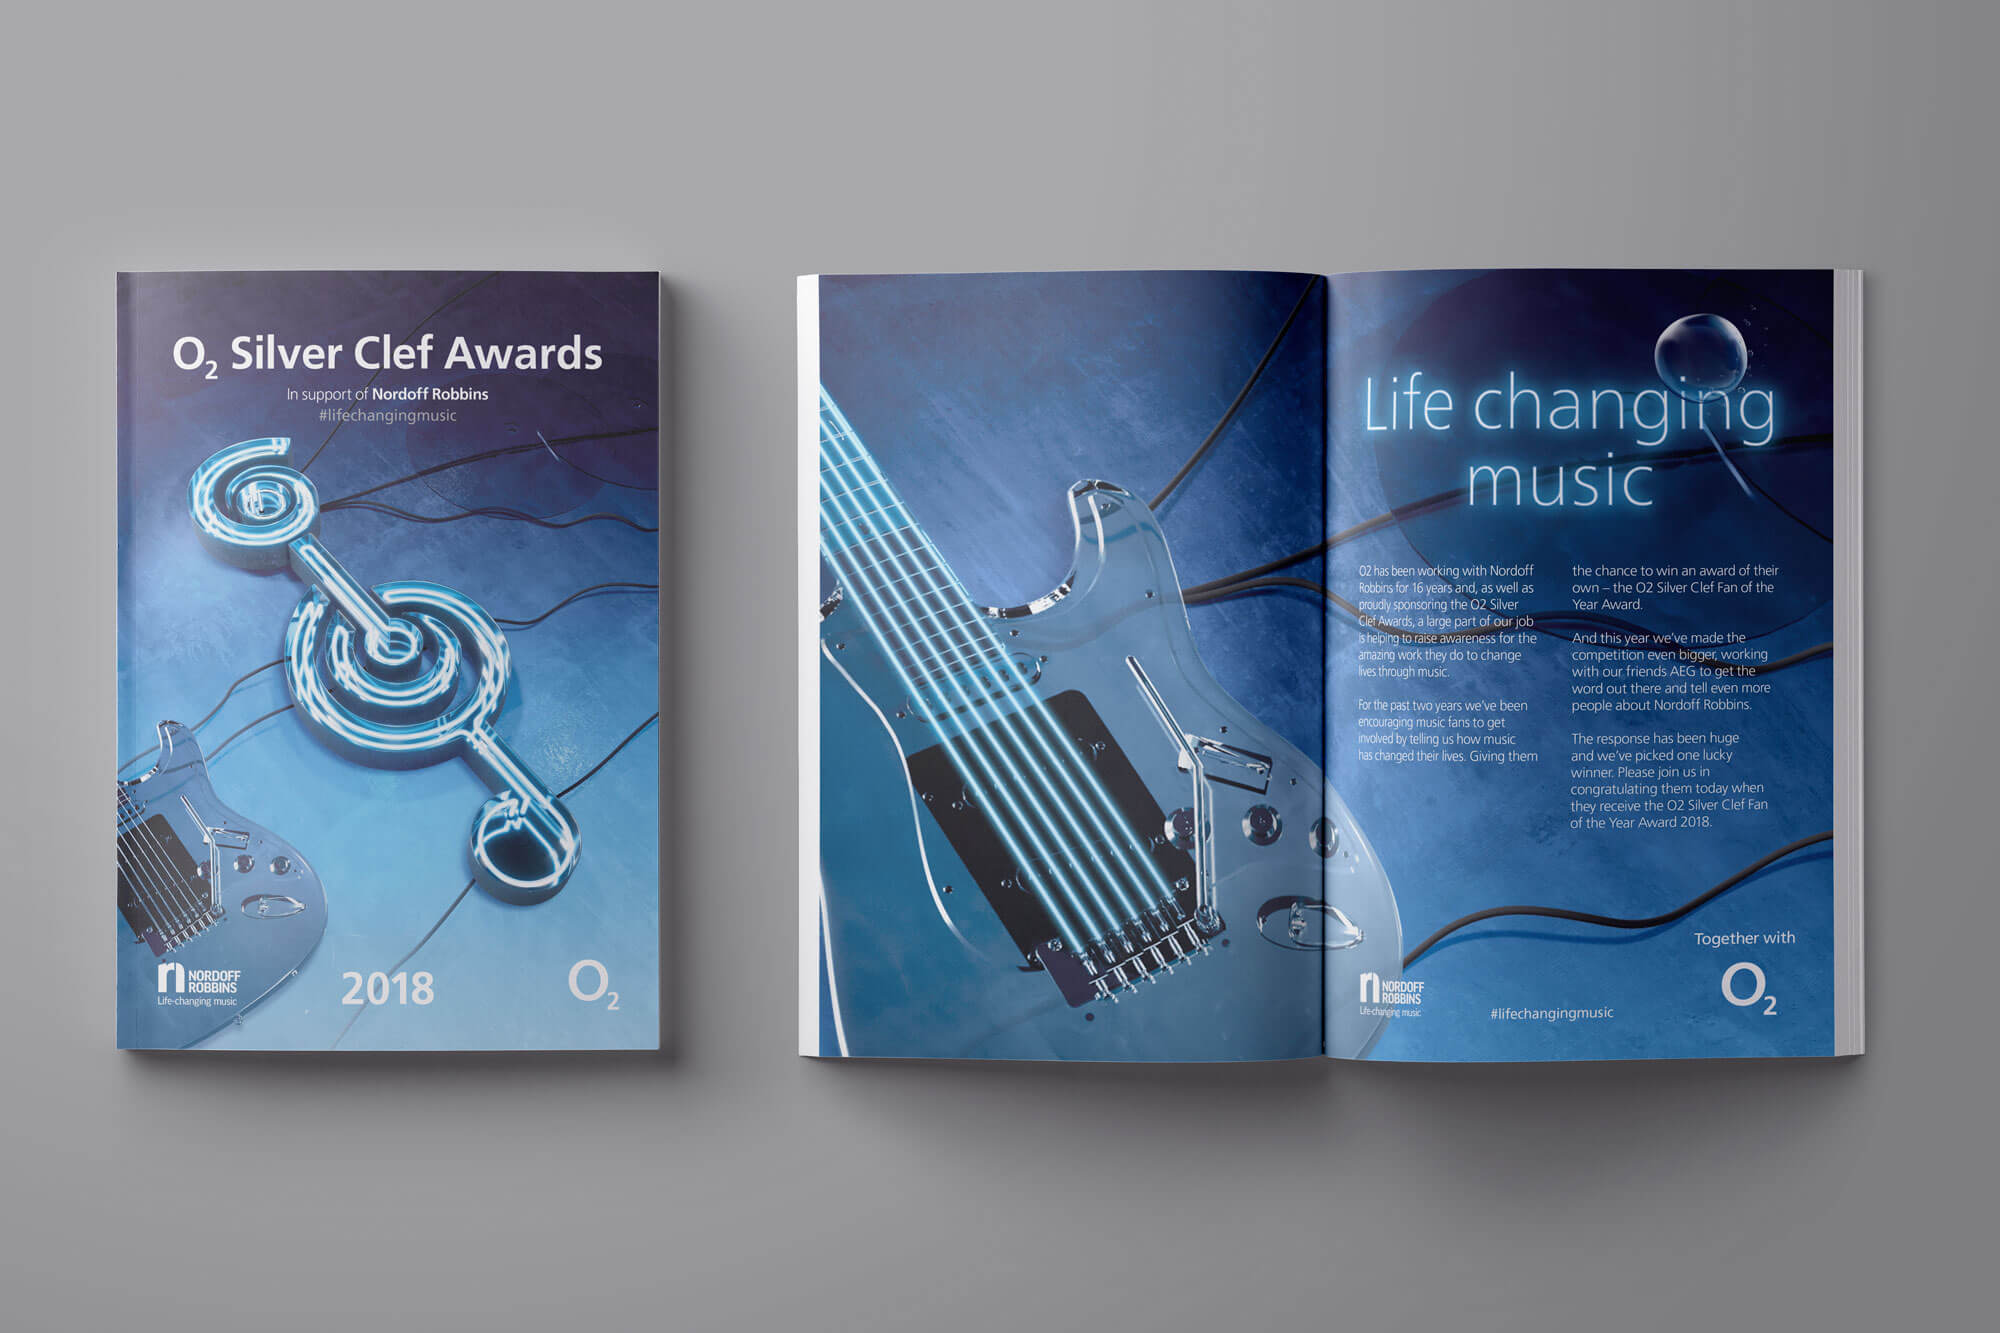 gpj-studio-o2-silver-clef-awards-brand-refresh-cs-07